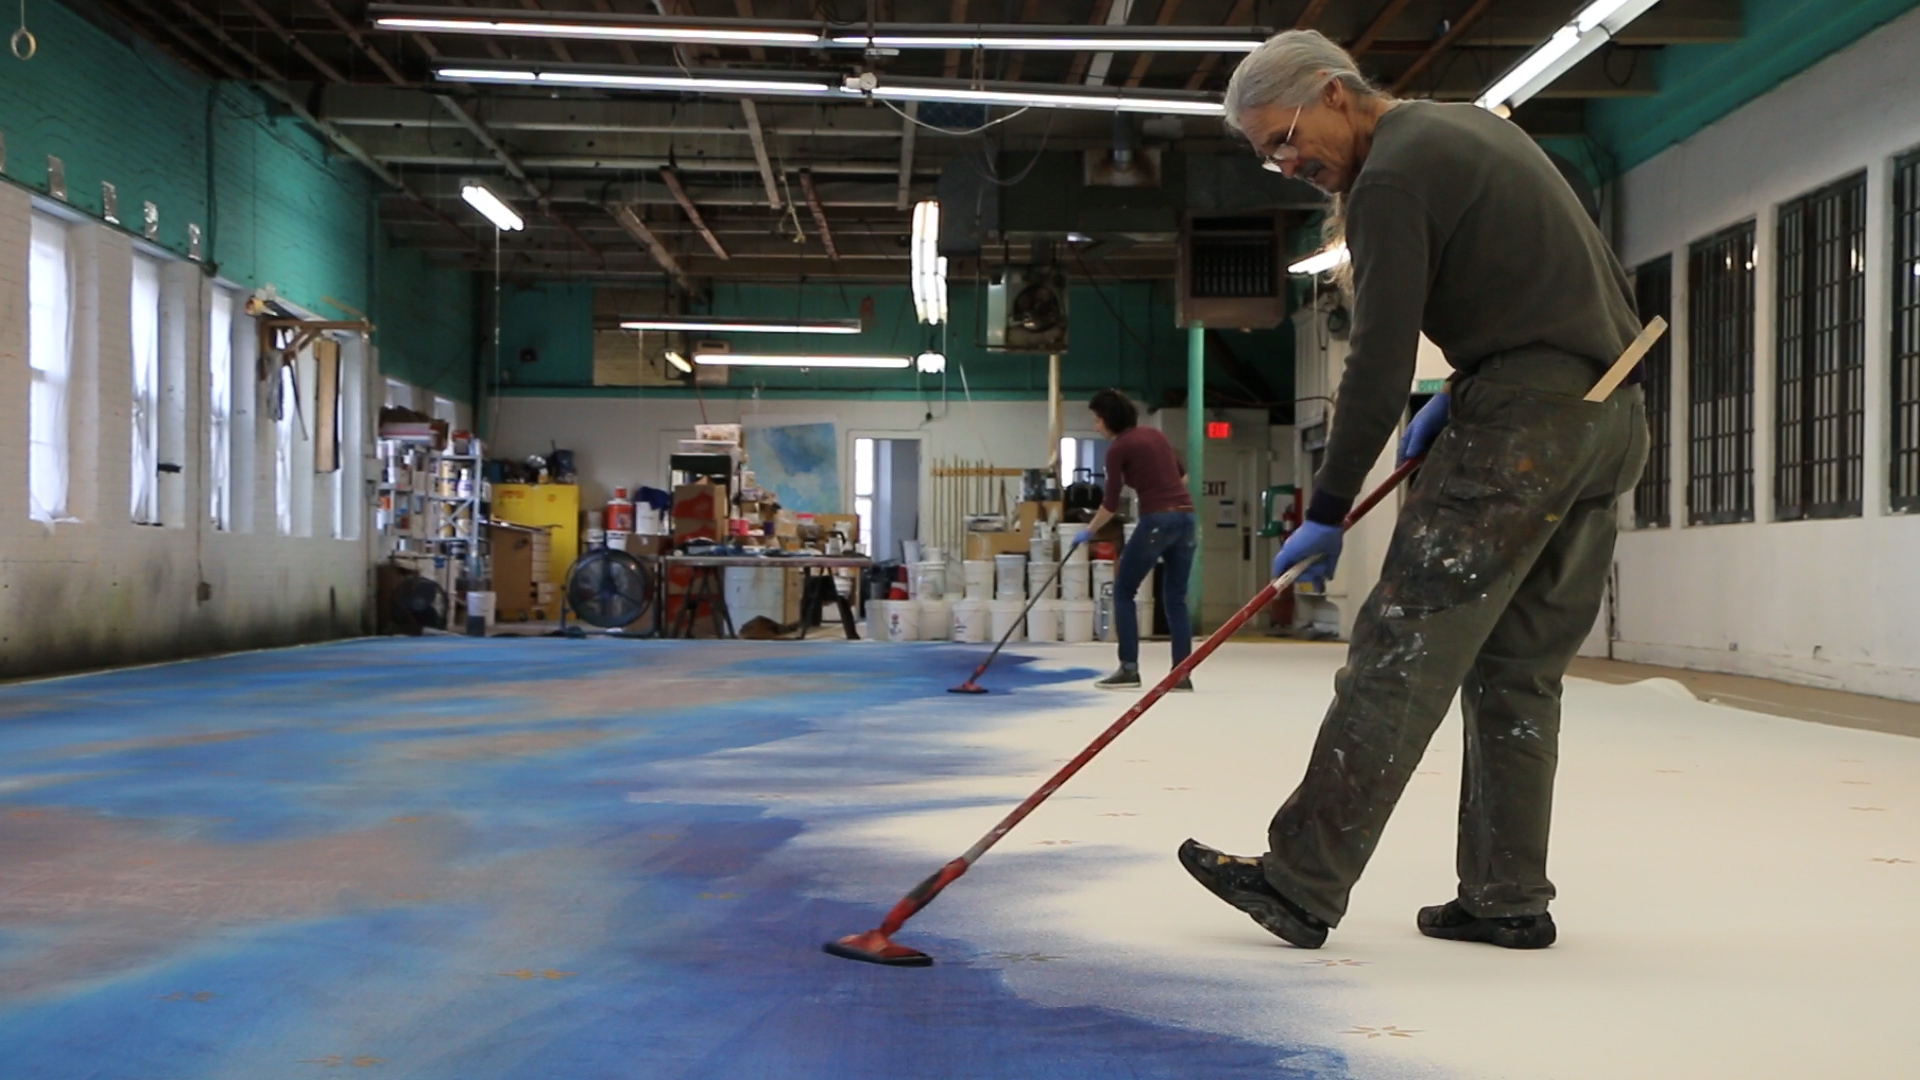 An Artist at work on a backdrop at Scenic Arts Studio